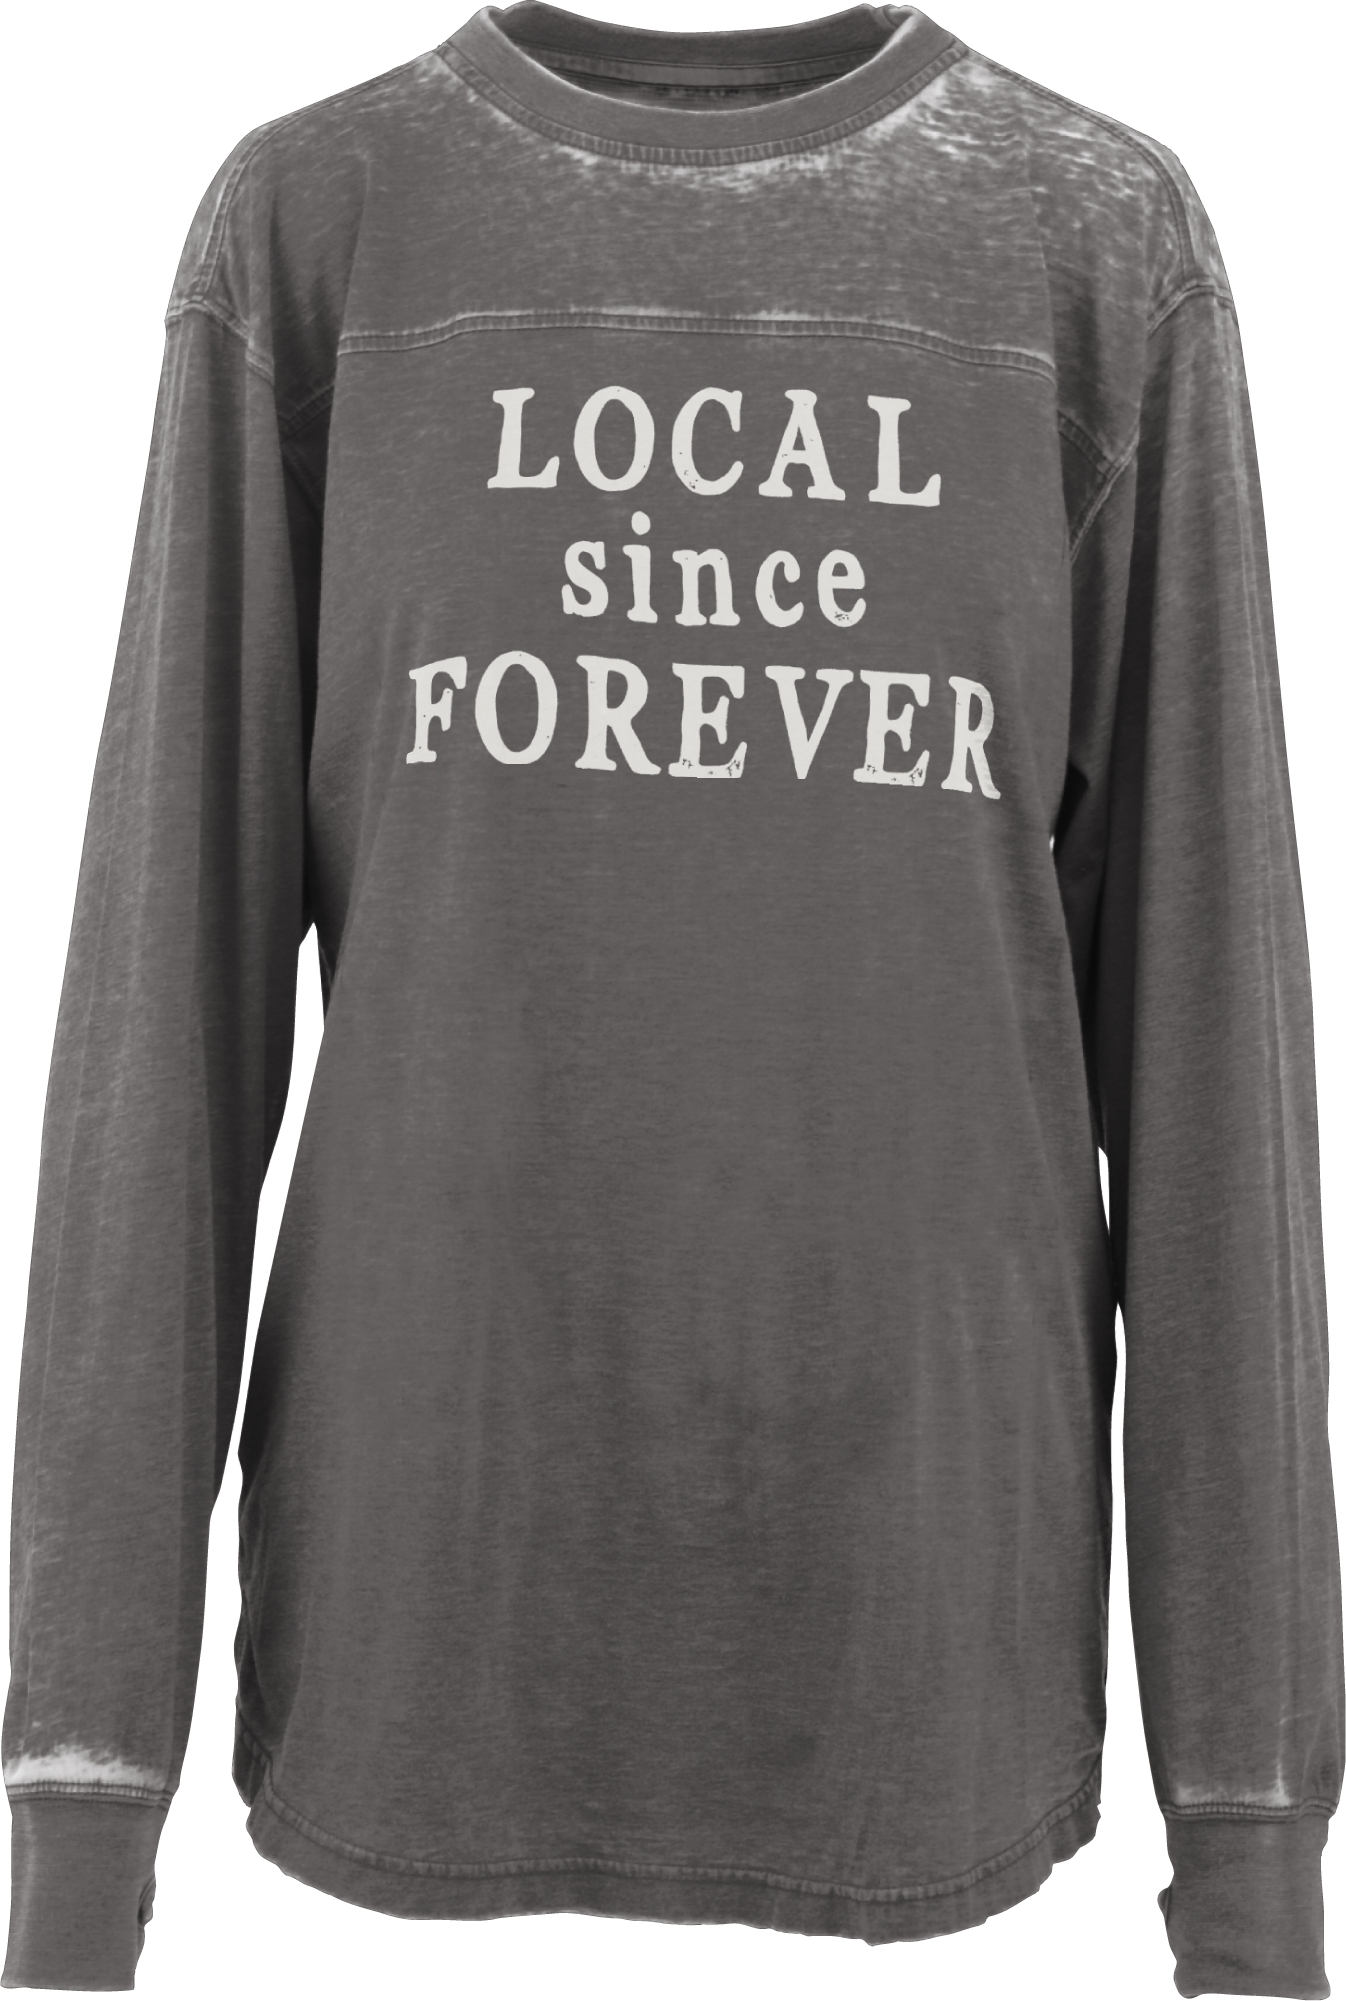 Pressbox Local Since Forever Long Sleeve